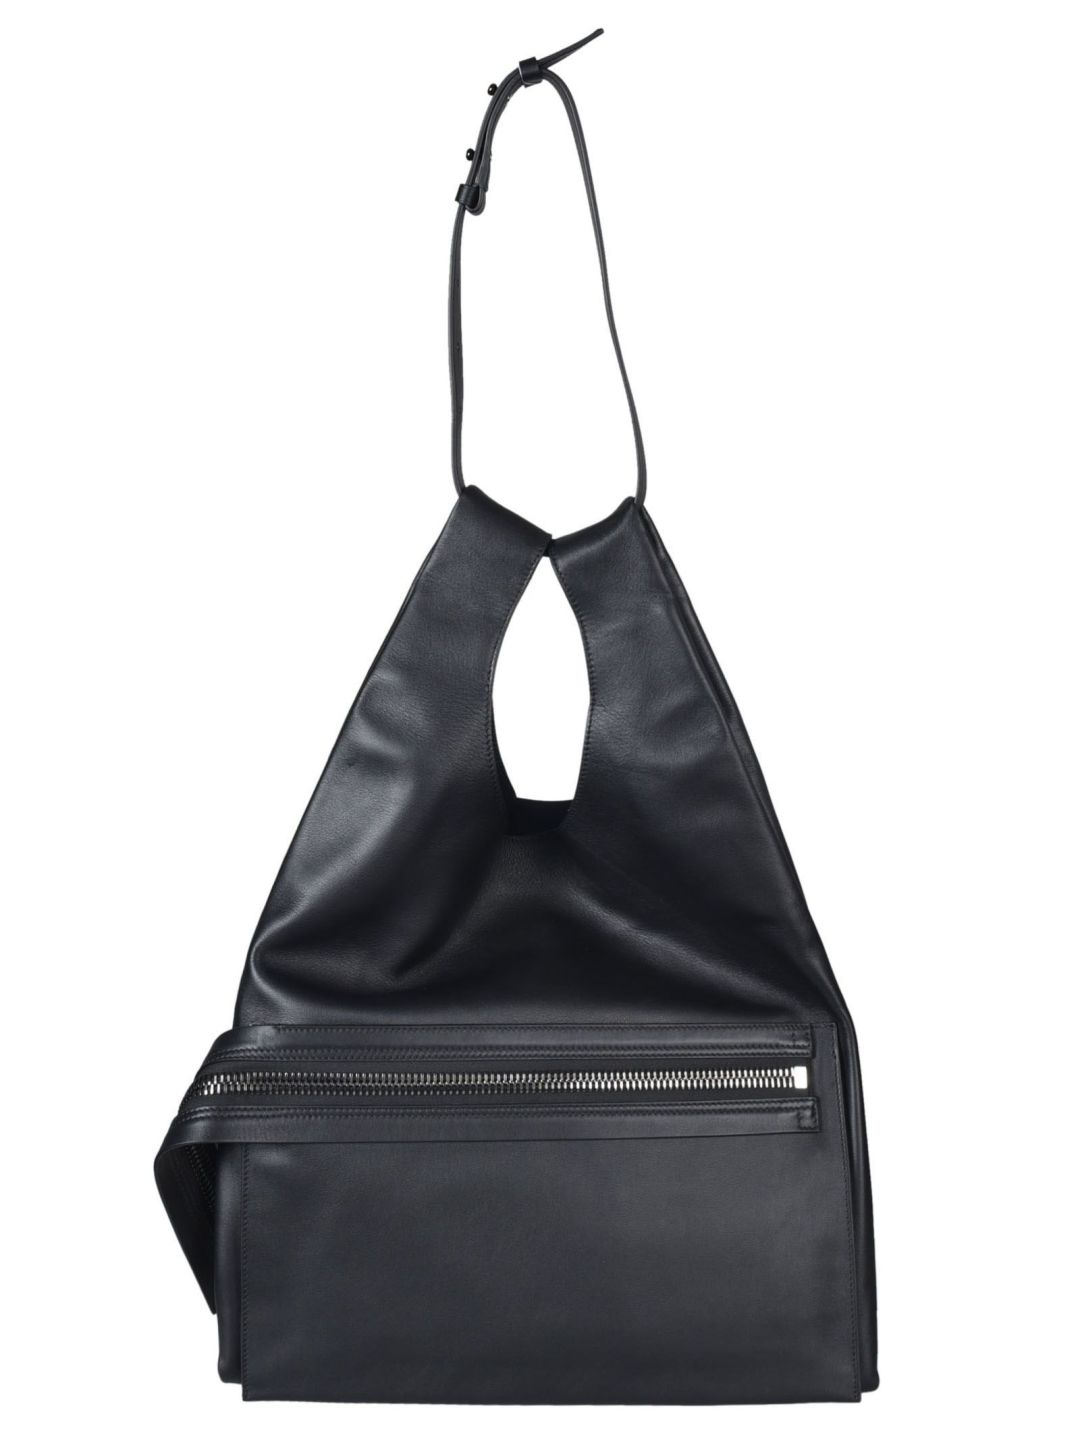 bdac613068771d Tom Ford Logo Hobo Bag – Italist.com US – $2,270.28